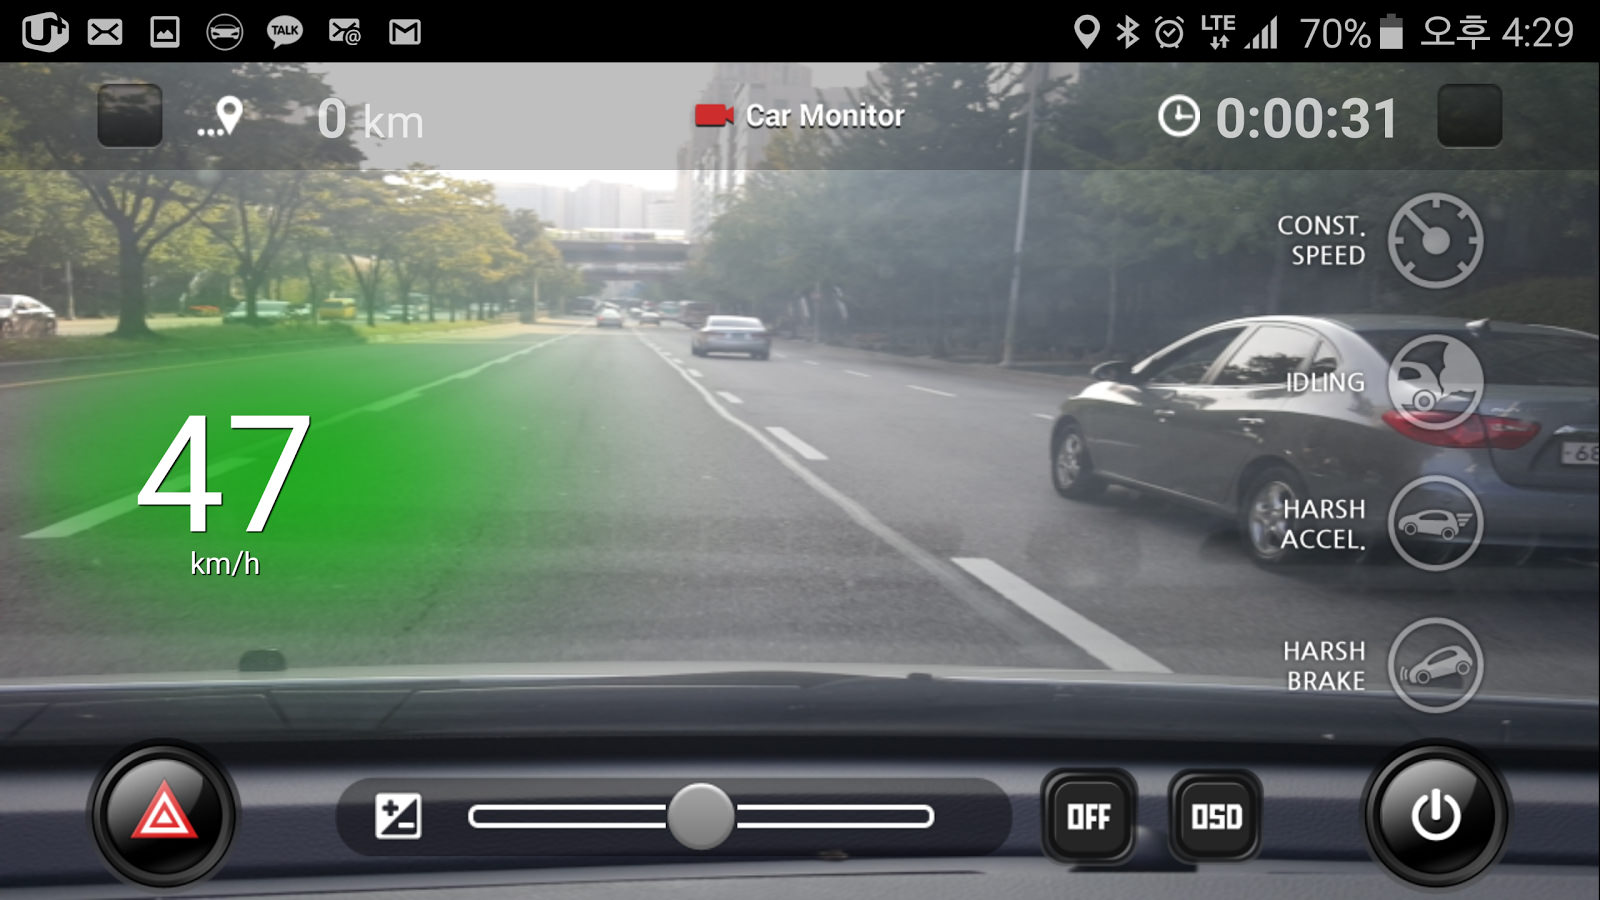 Dash cam use in road traffic accidents - April 2018